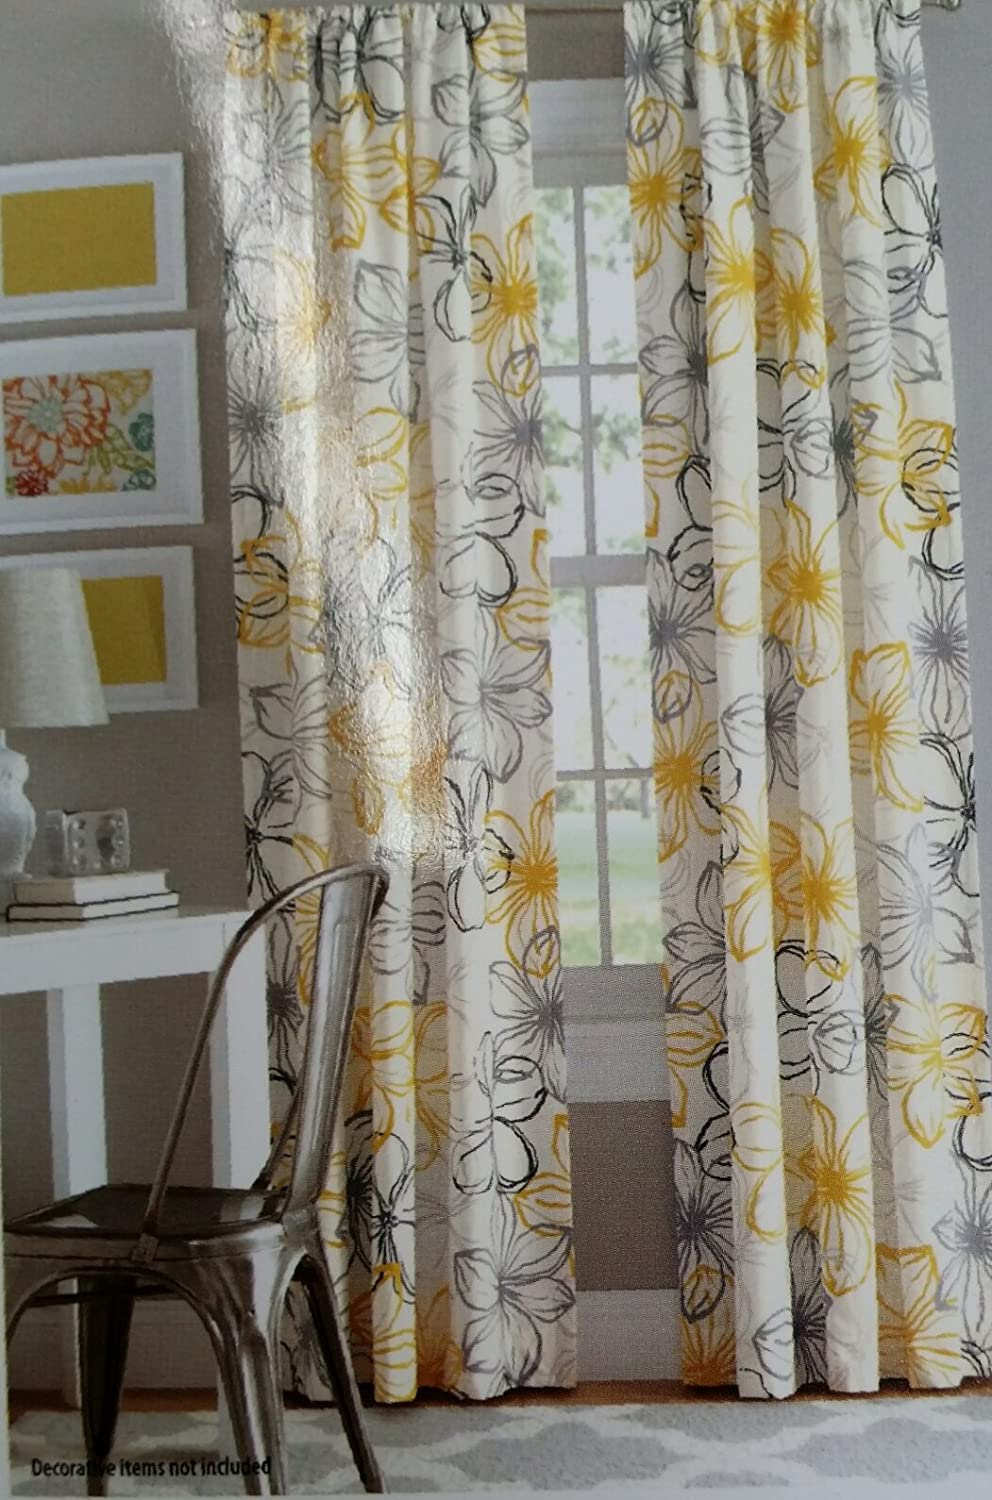 grey decorative com blue gorillacrouch yellow pattern flower printed and floral curtains with